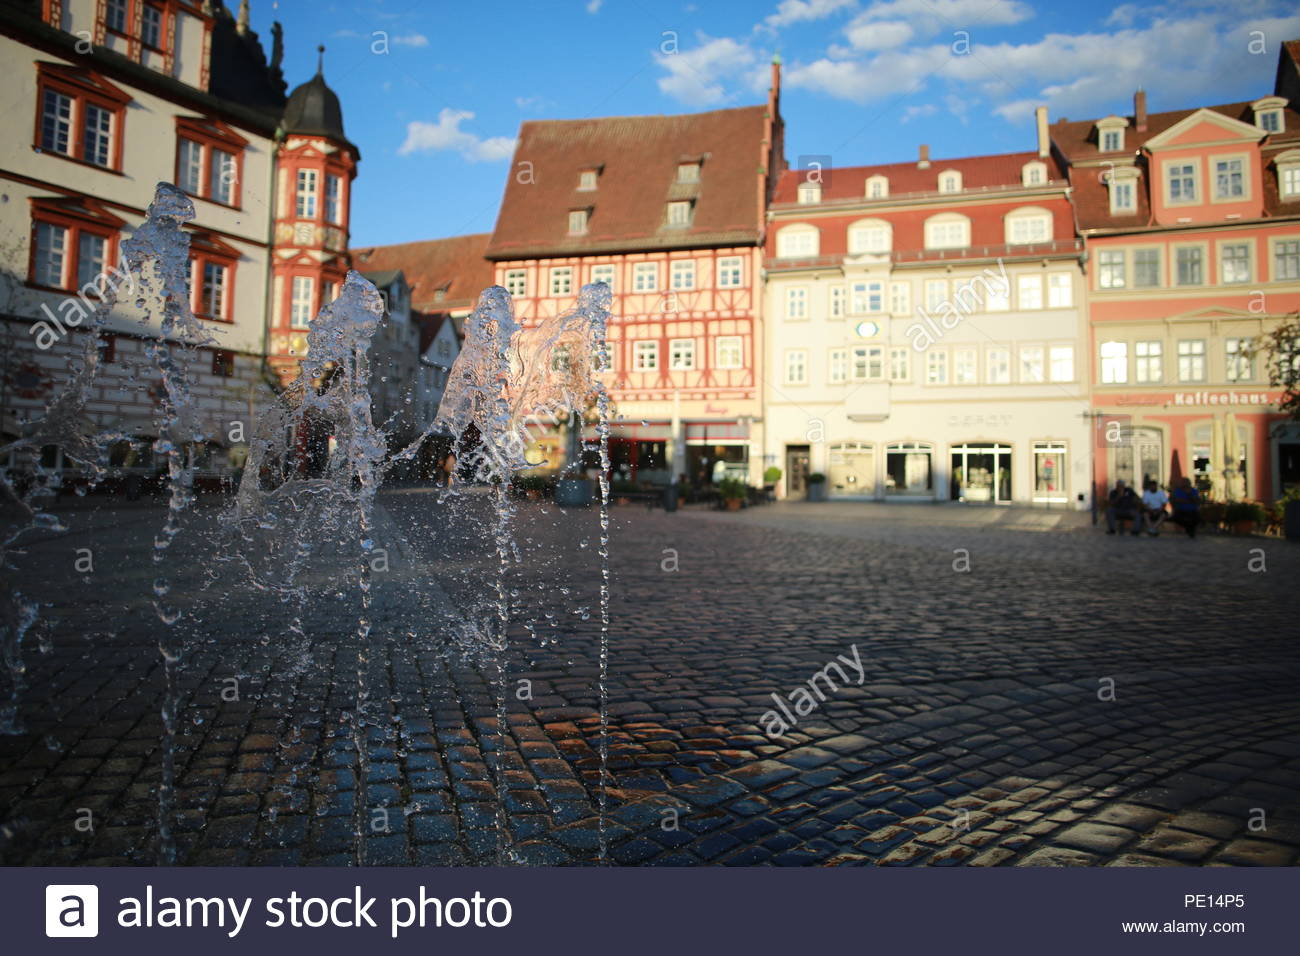 Jets of water shoot into the air in the market square in the town of Coburg, Germany on a beautiful summer's evening during a heat wave - Stock Image